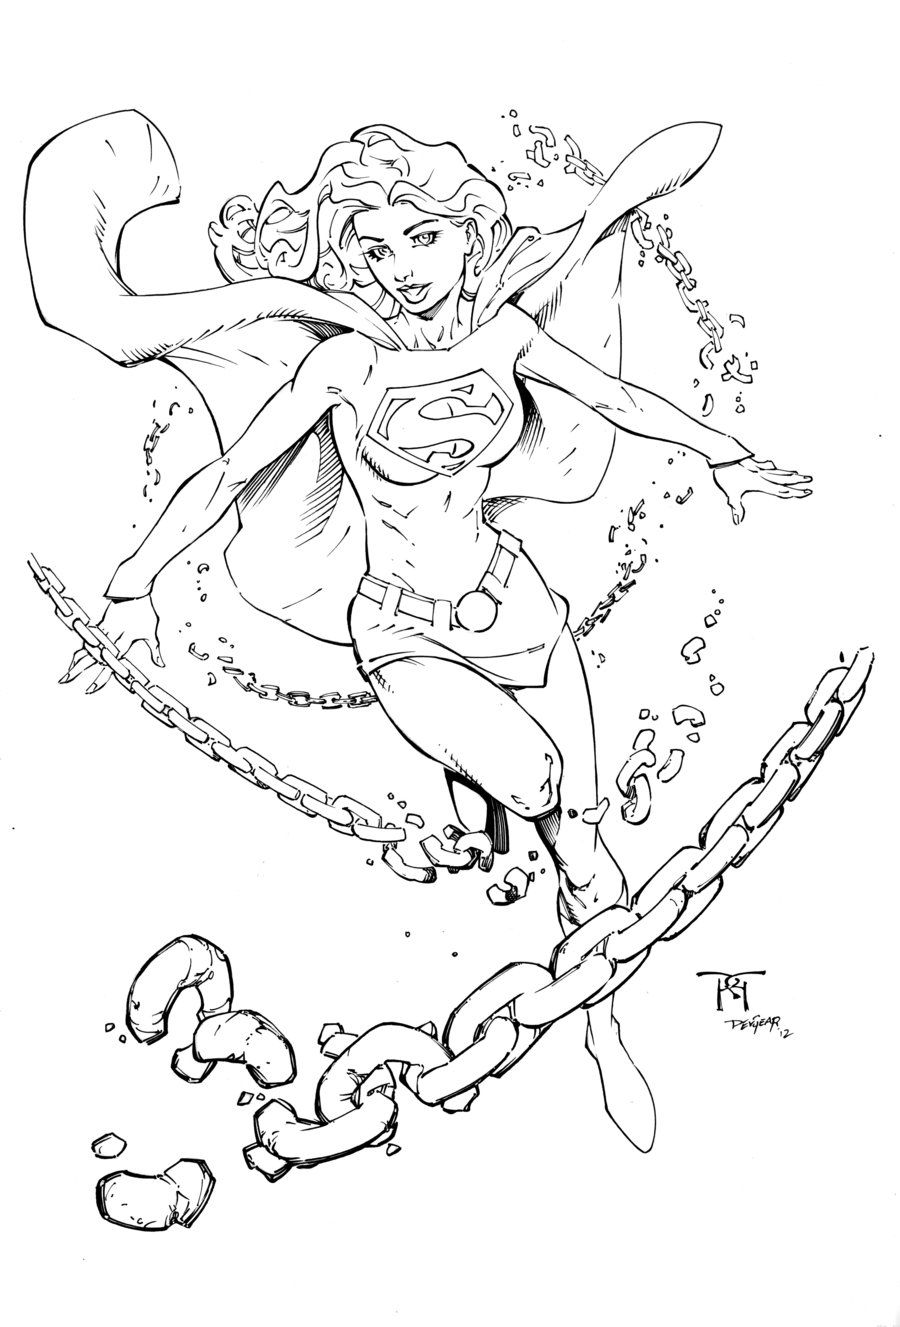 Drawing Supergirl Coloring Pages CRAFTS AND MORE in 2019